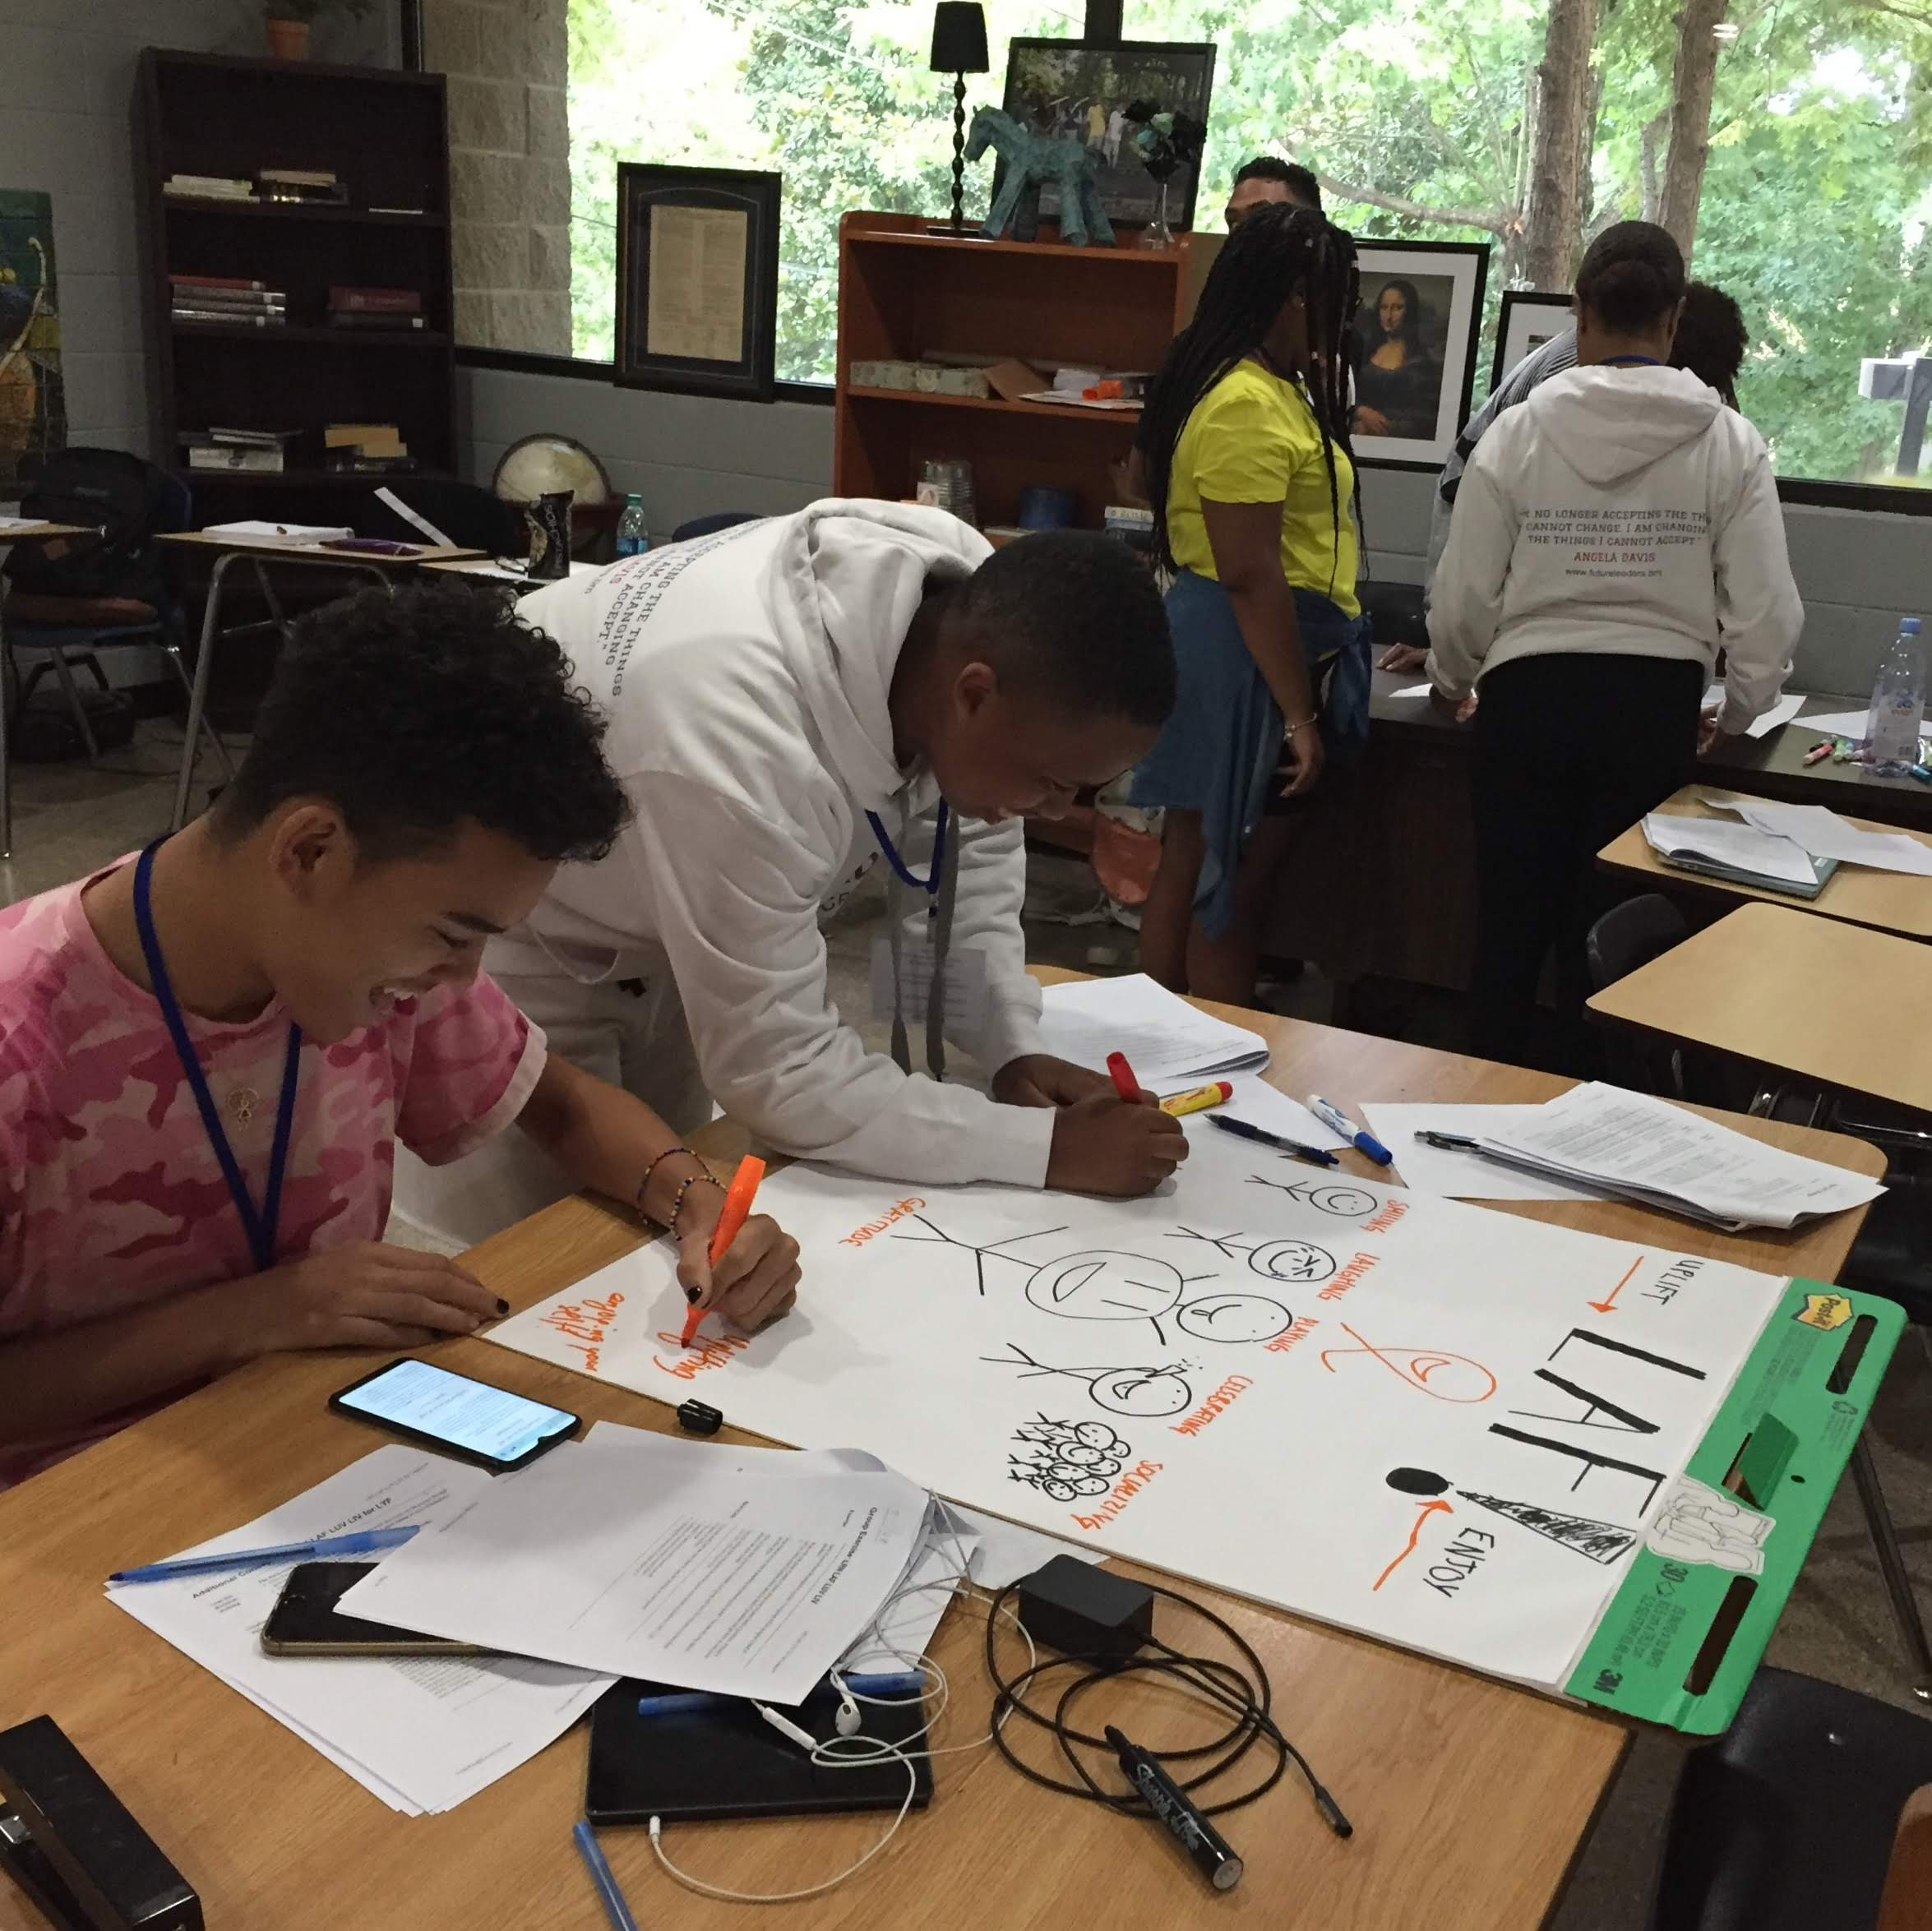 LRN LAF LUV LIV Learn Laugh Love Live for Leaders Workshop 2 Students Creating Poster